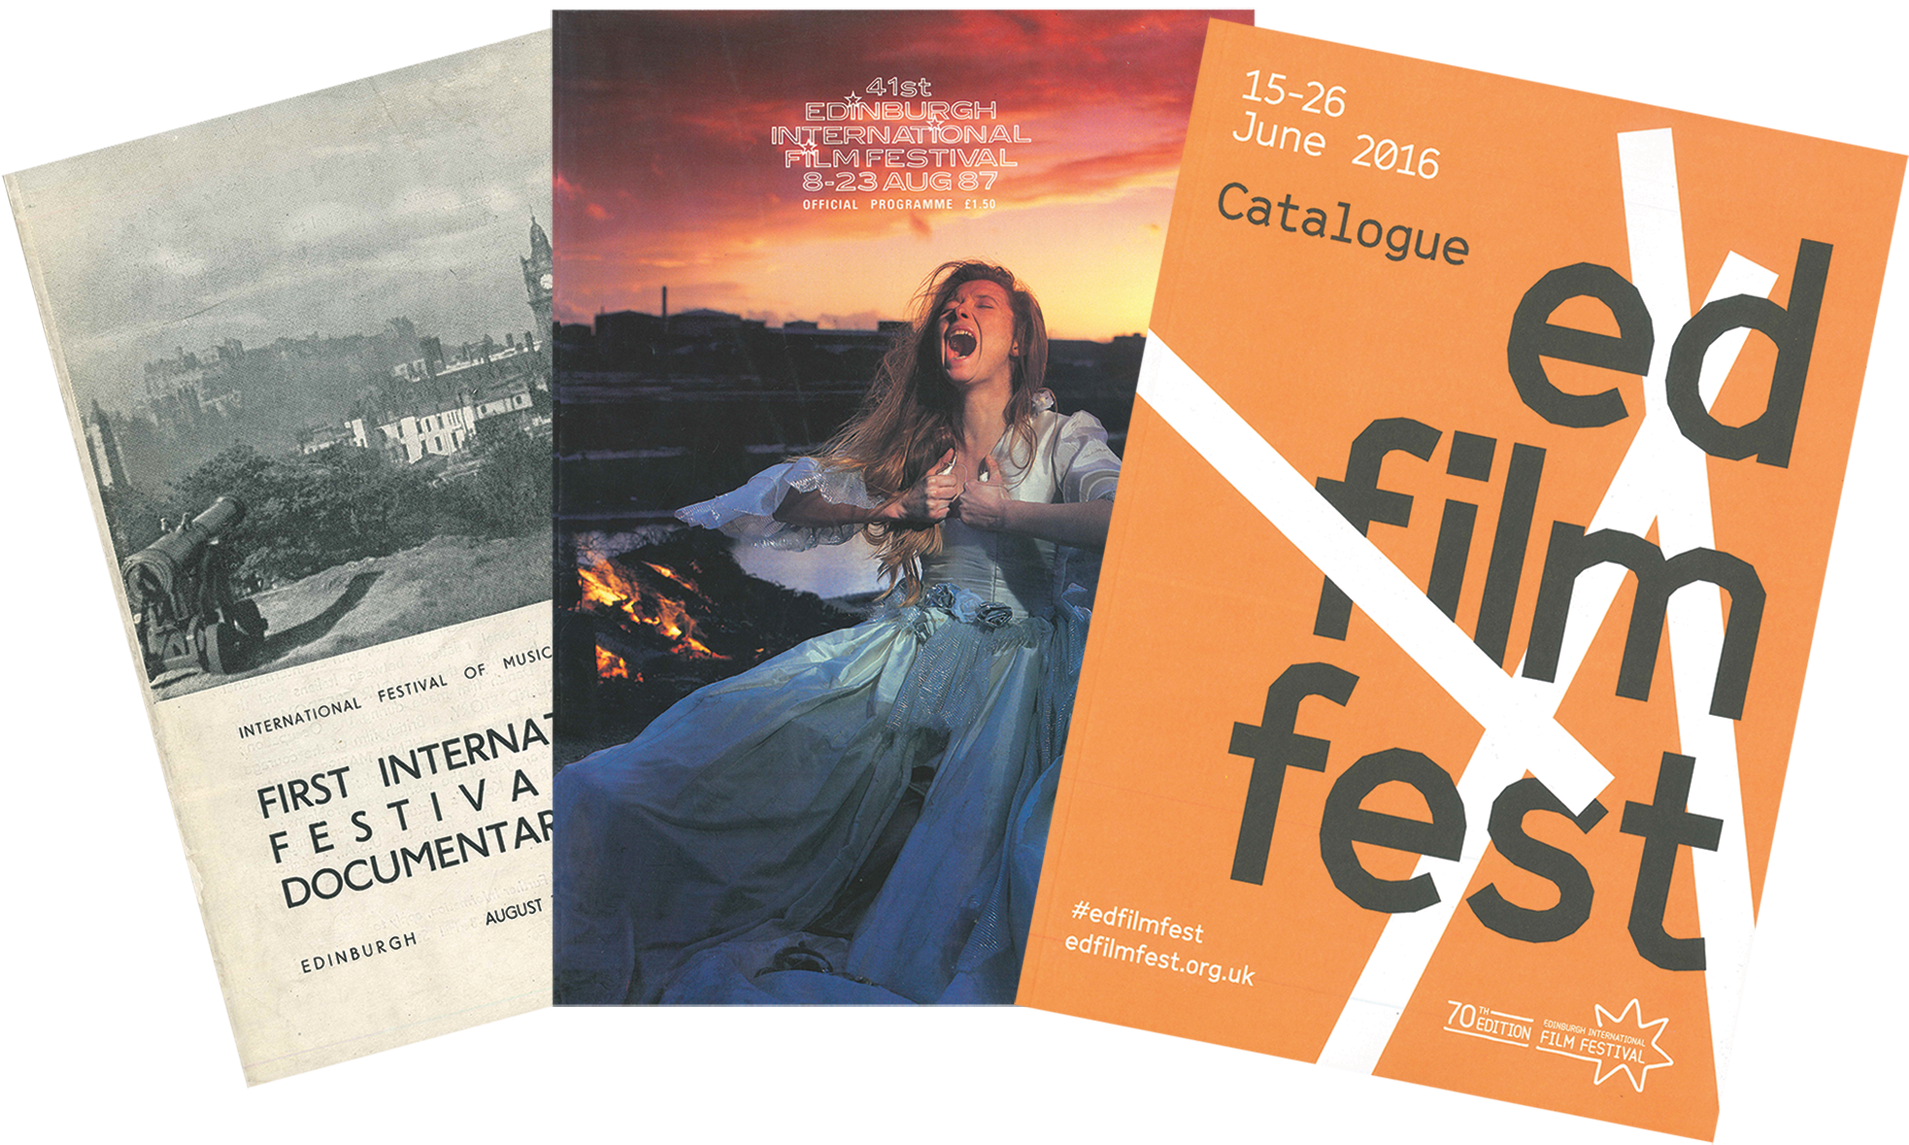 EIFF covers from 1947, 1987 and 2016